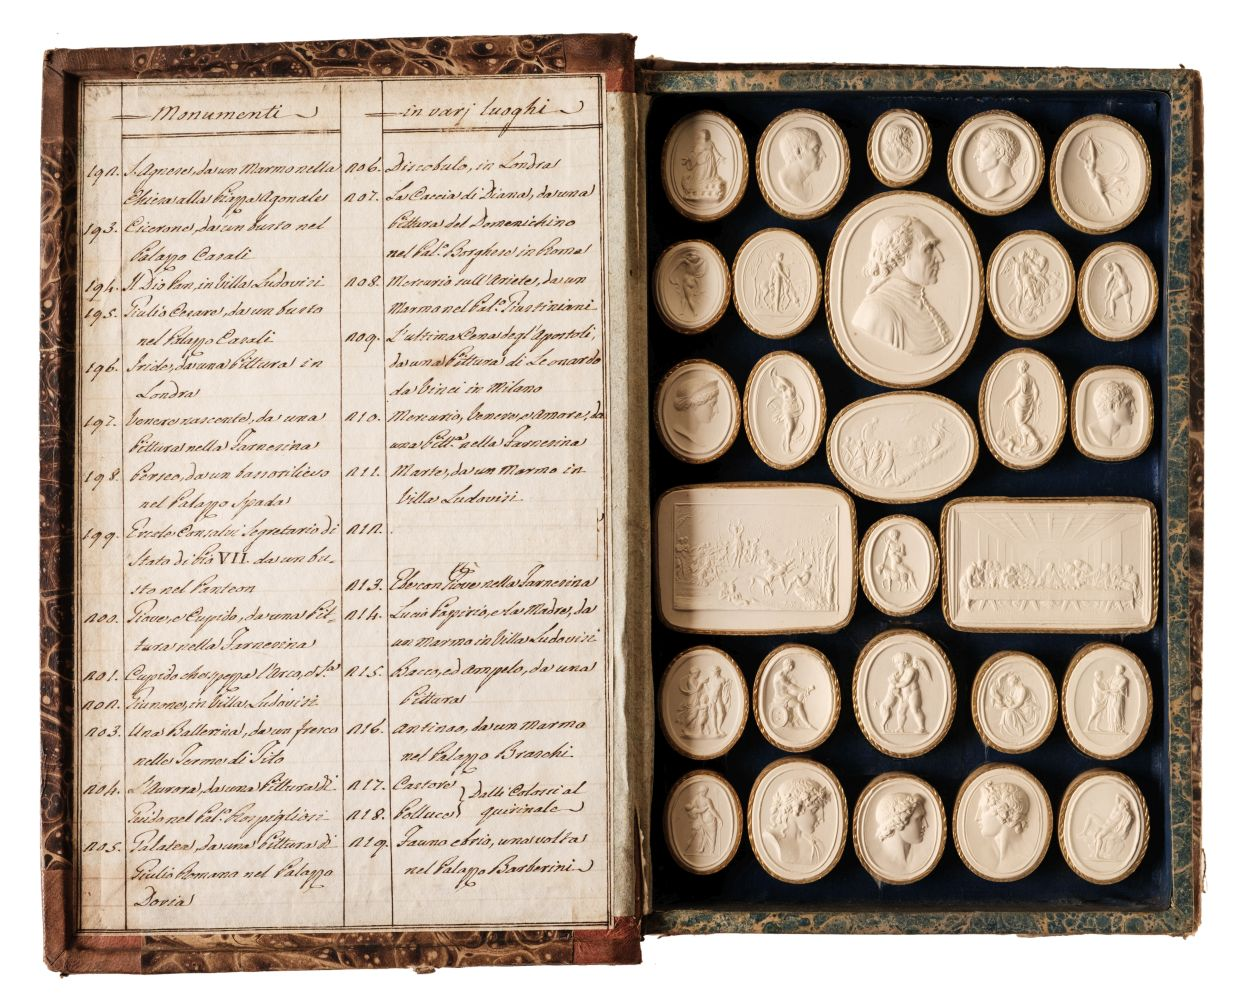 Paoletti (Bartolomeo and Pietro). A collection of 300 plaster cameos, 1820 - Image 4 of 16